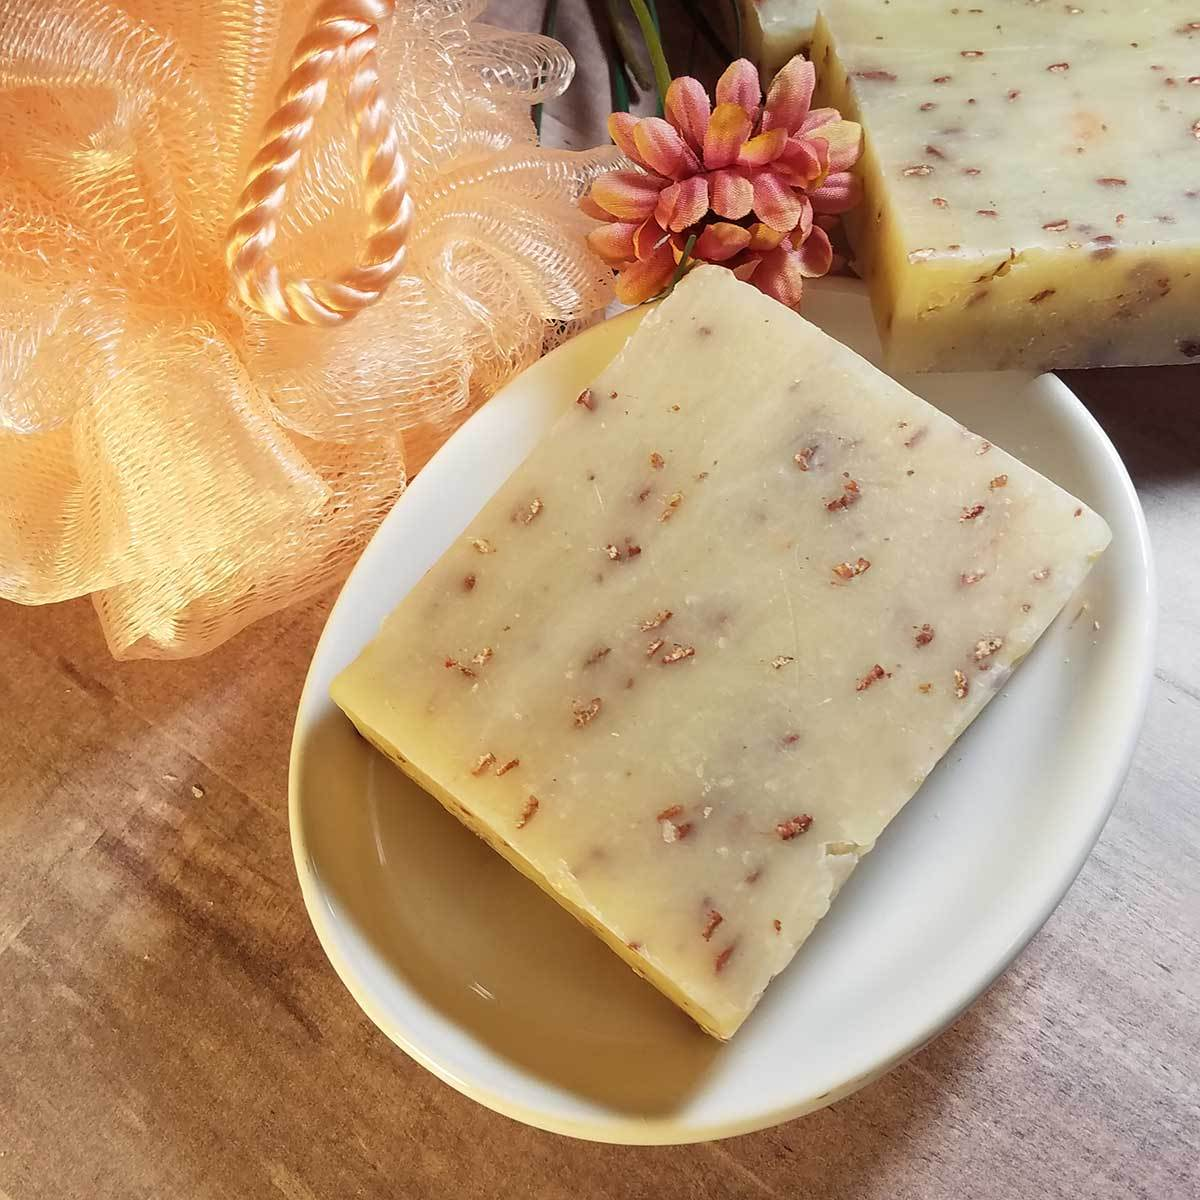 Wildflowers & Oatmeal Handmade Soap